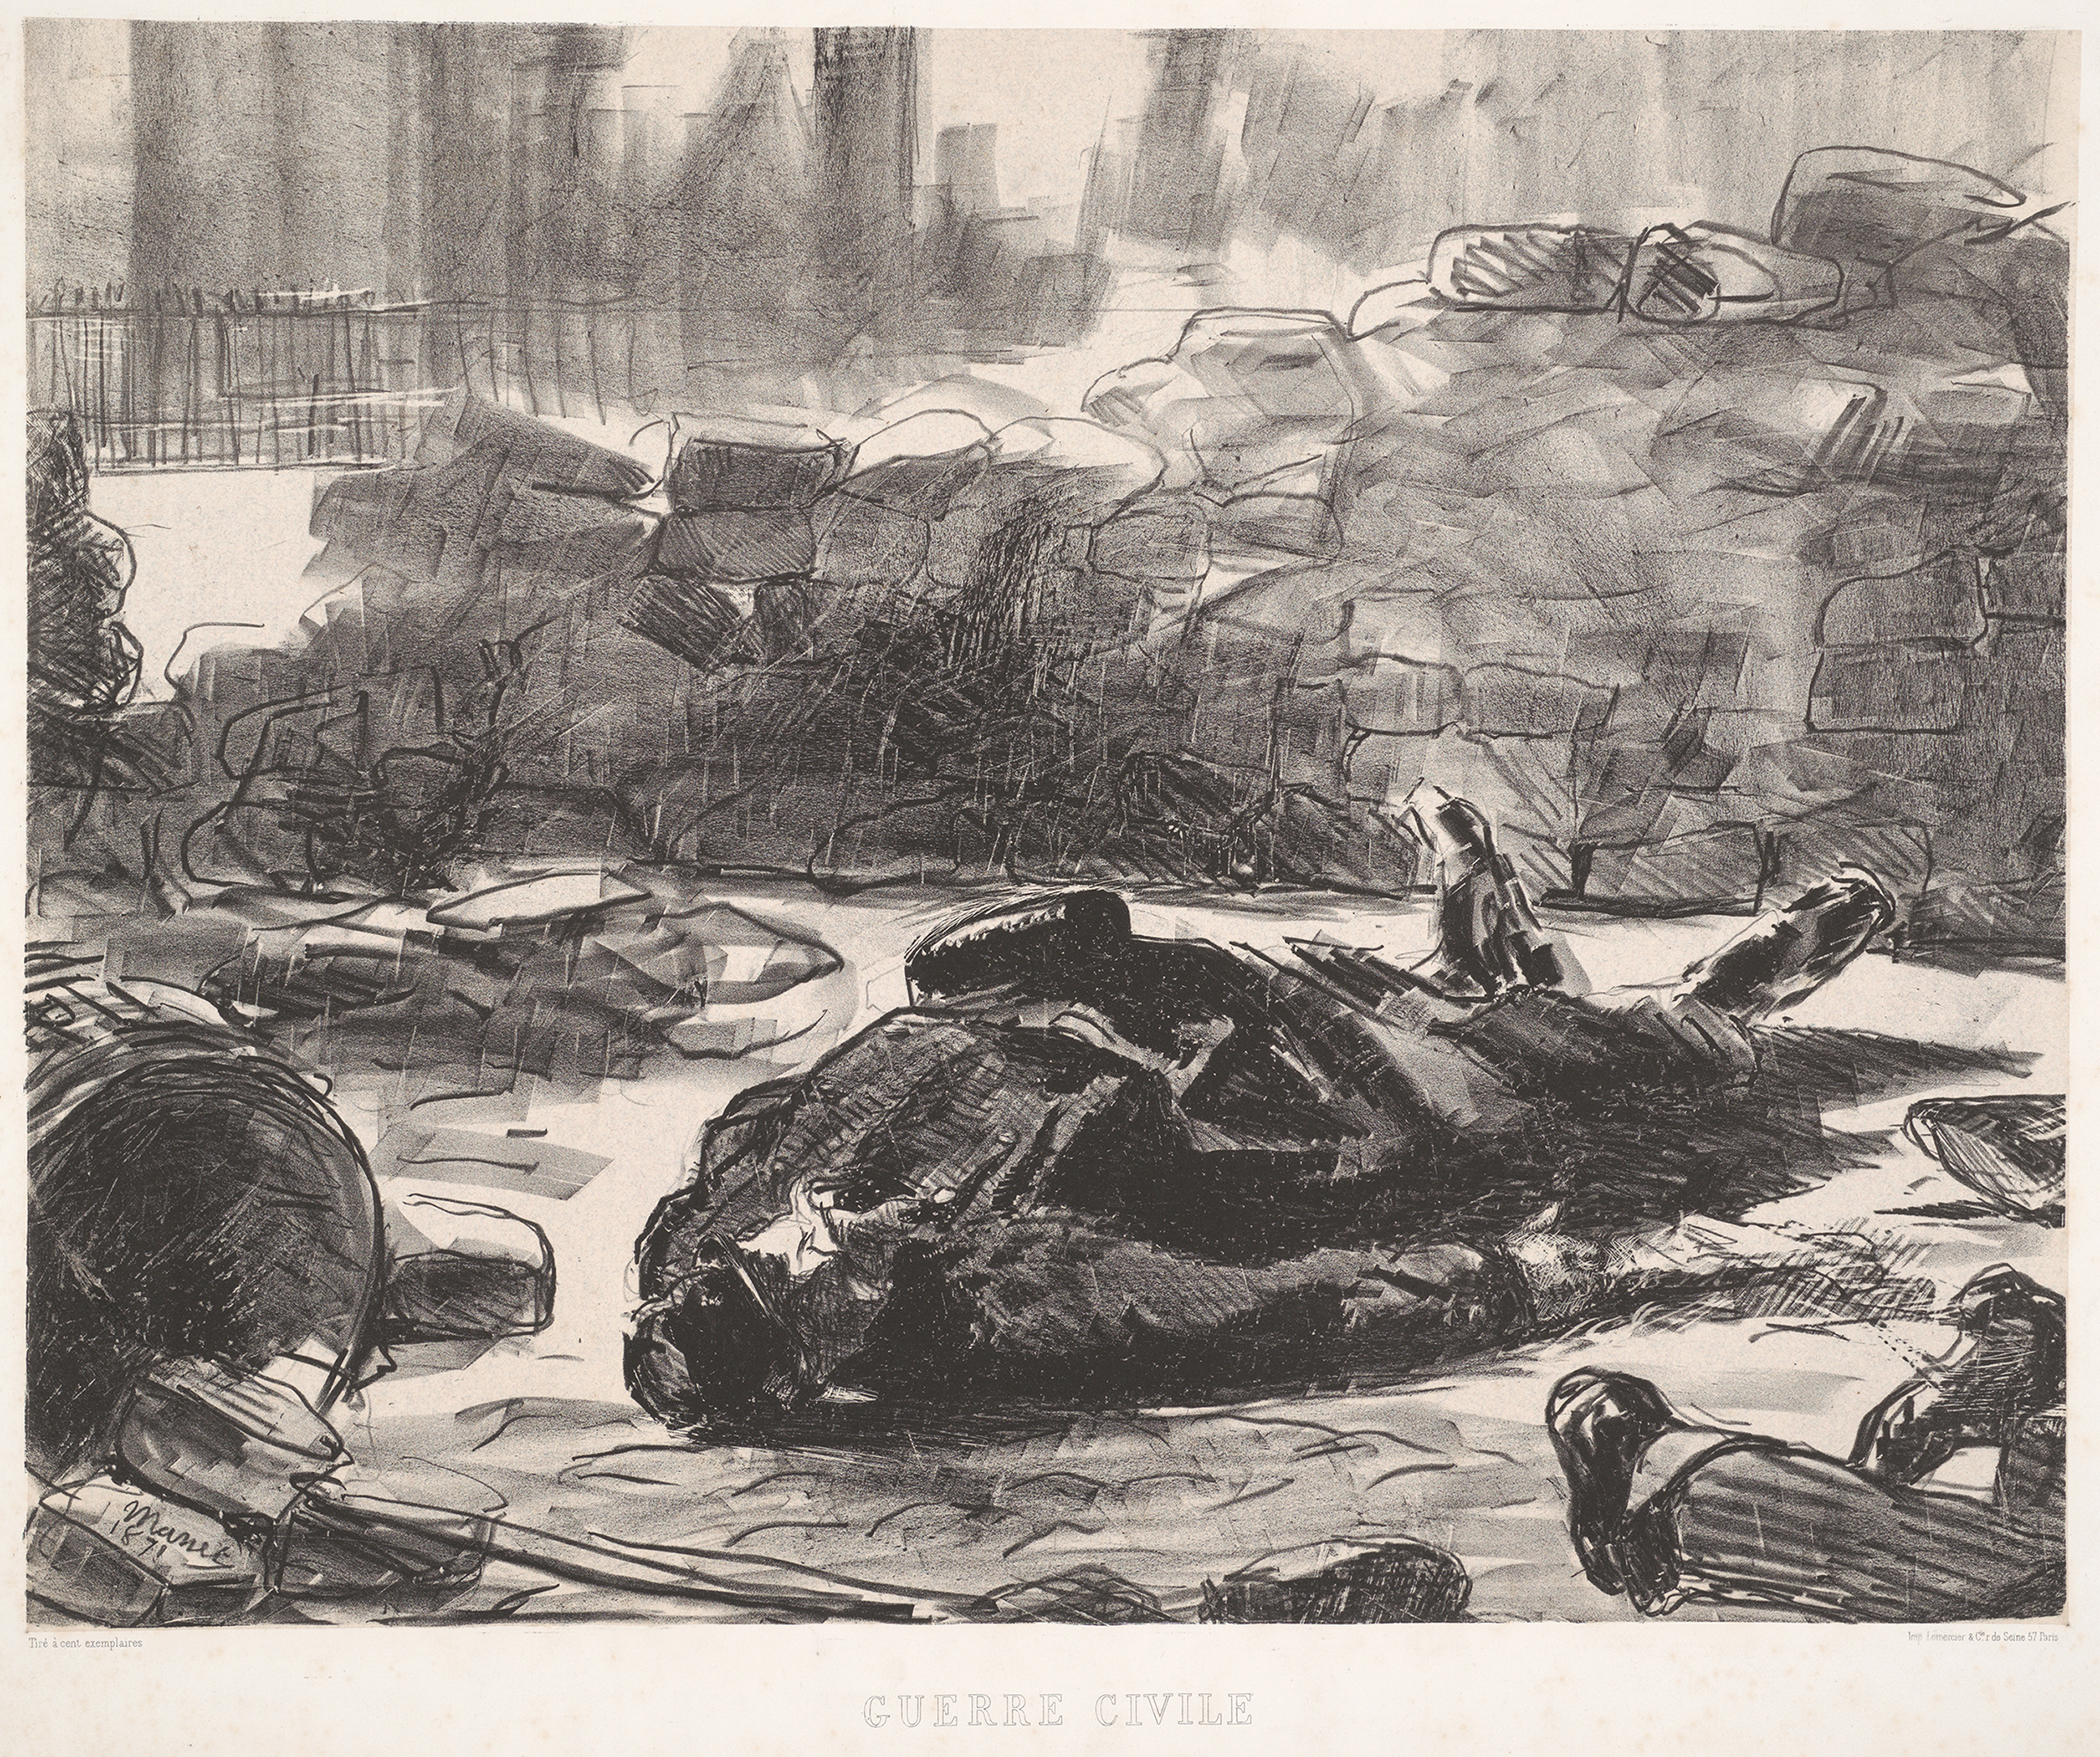 Édouard Manet (French, 1832 - 1883). Guerre Civile, scène de la Commune de Paris, 1871 (Civil War), 1871. Lithograph on chine collé mounted on heavy wove paper. Image: 400 mm x 510 mm (15.75 in. x 20.08 in.). Weedon Endowment funds, 1974. DAC accession no. 1974.24.1. Open Access Image from the Davison Art Center, Wesleyan University.